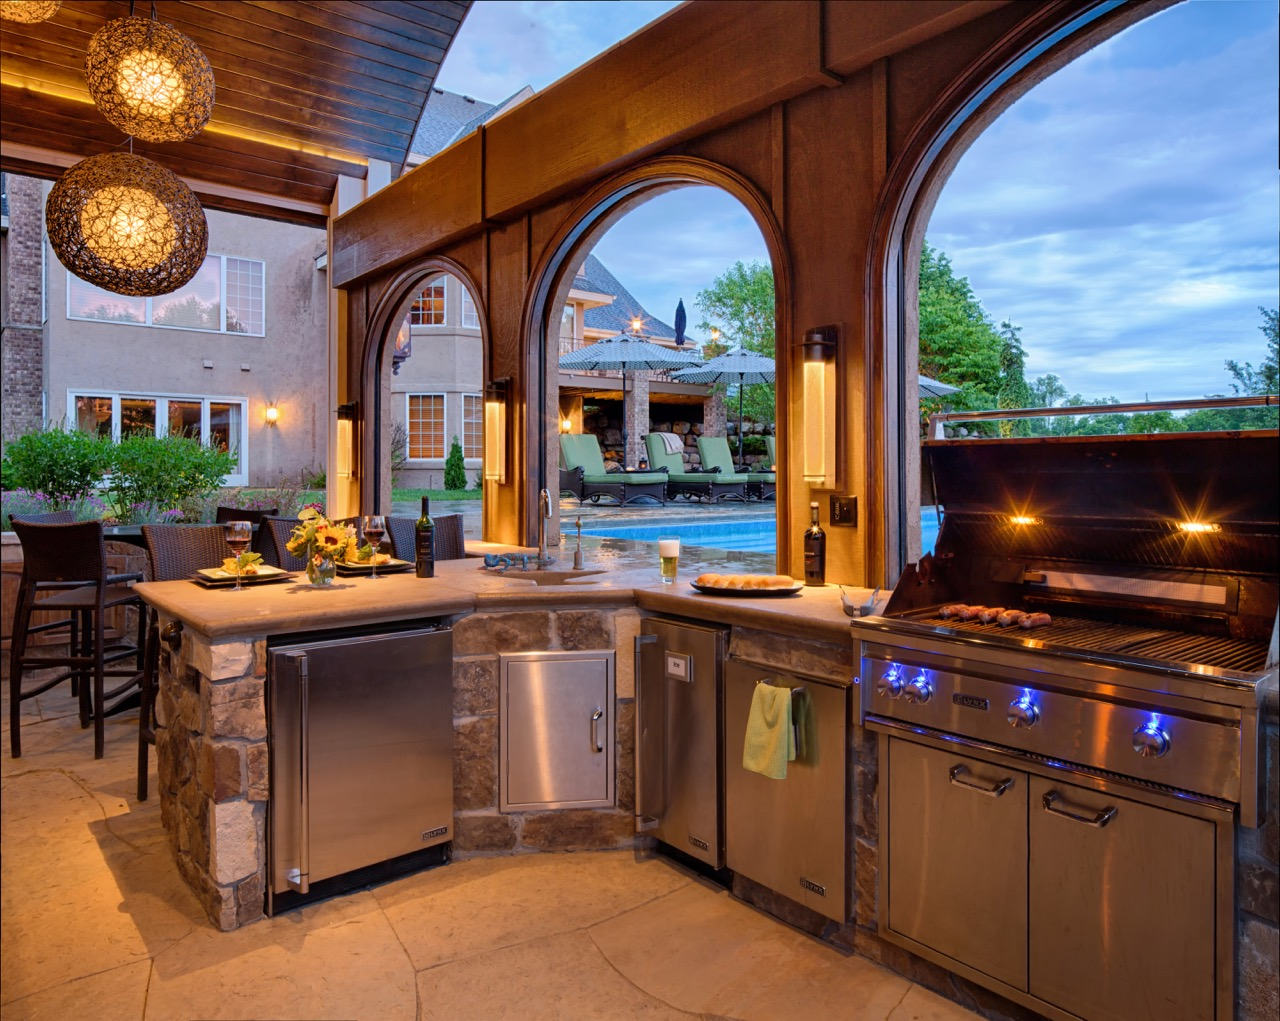 Mom's Design Build - Outdoor Kitchen Poolhouse